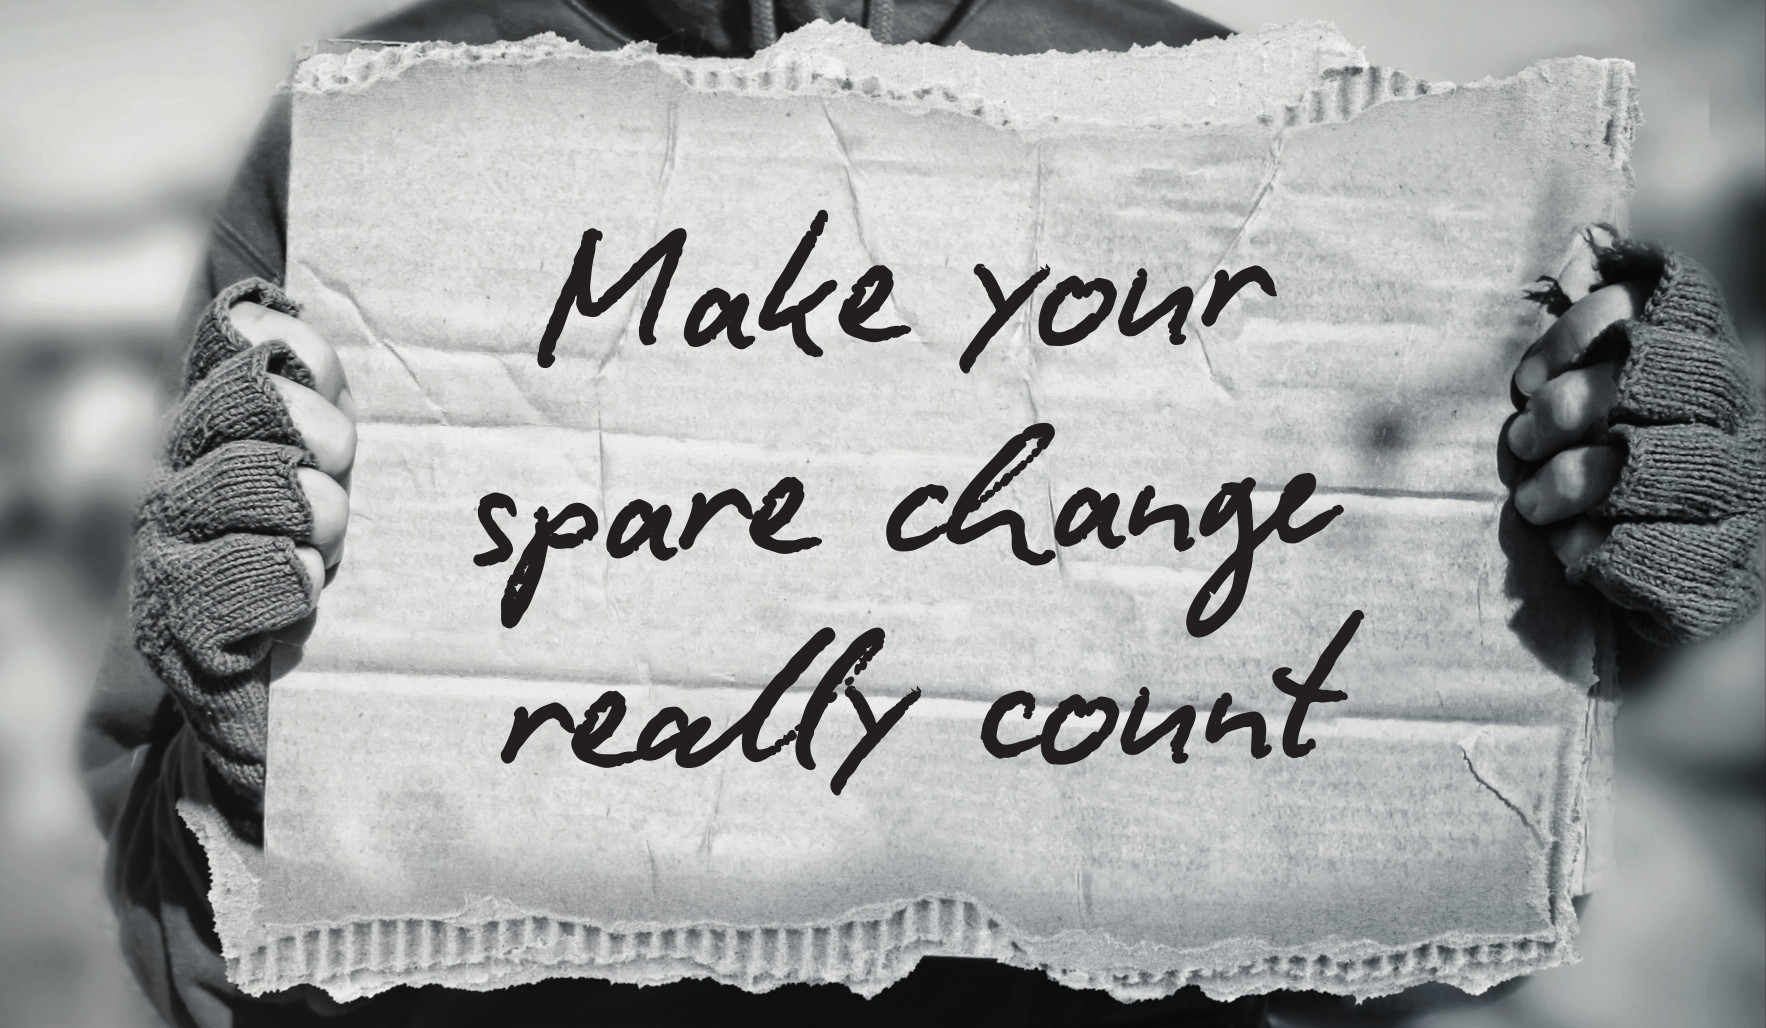 Make your small change really count